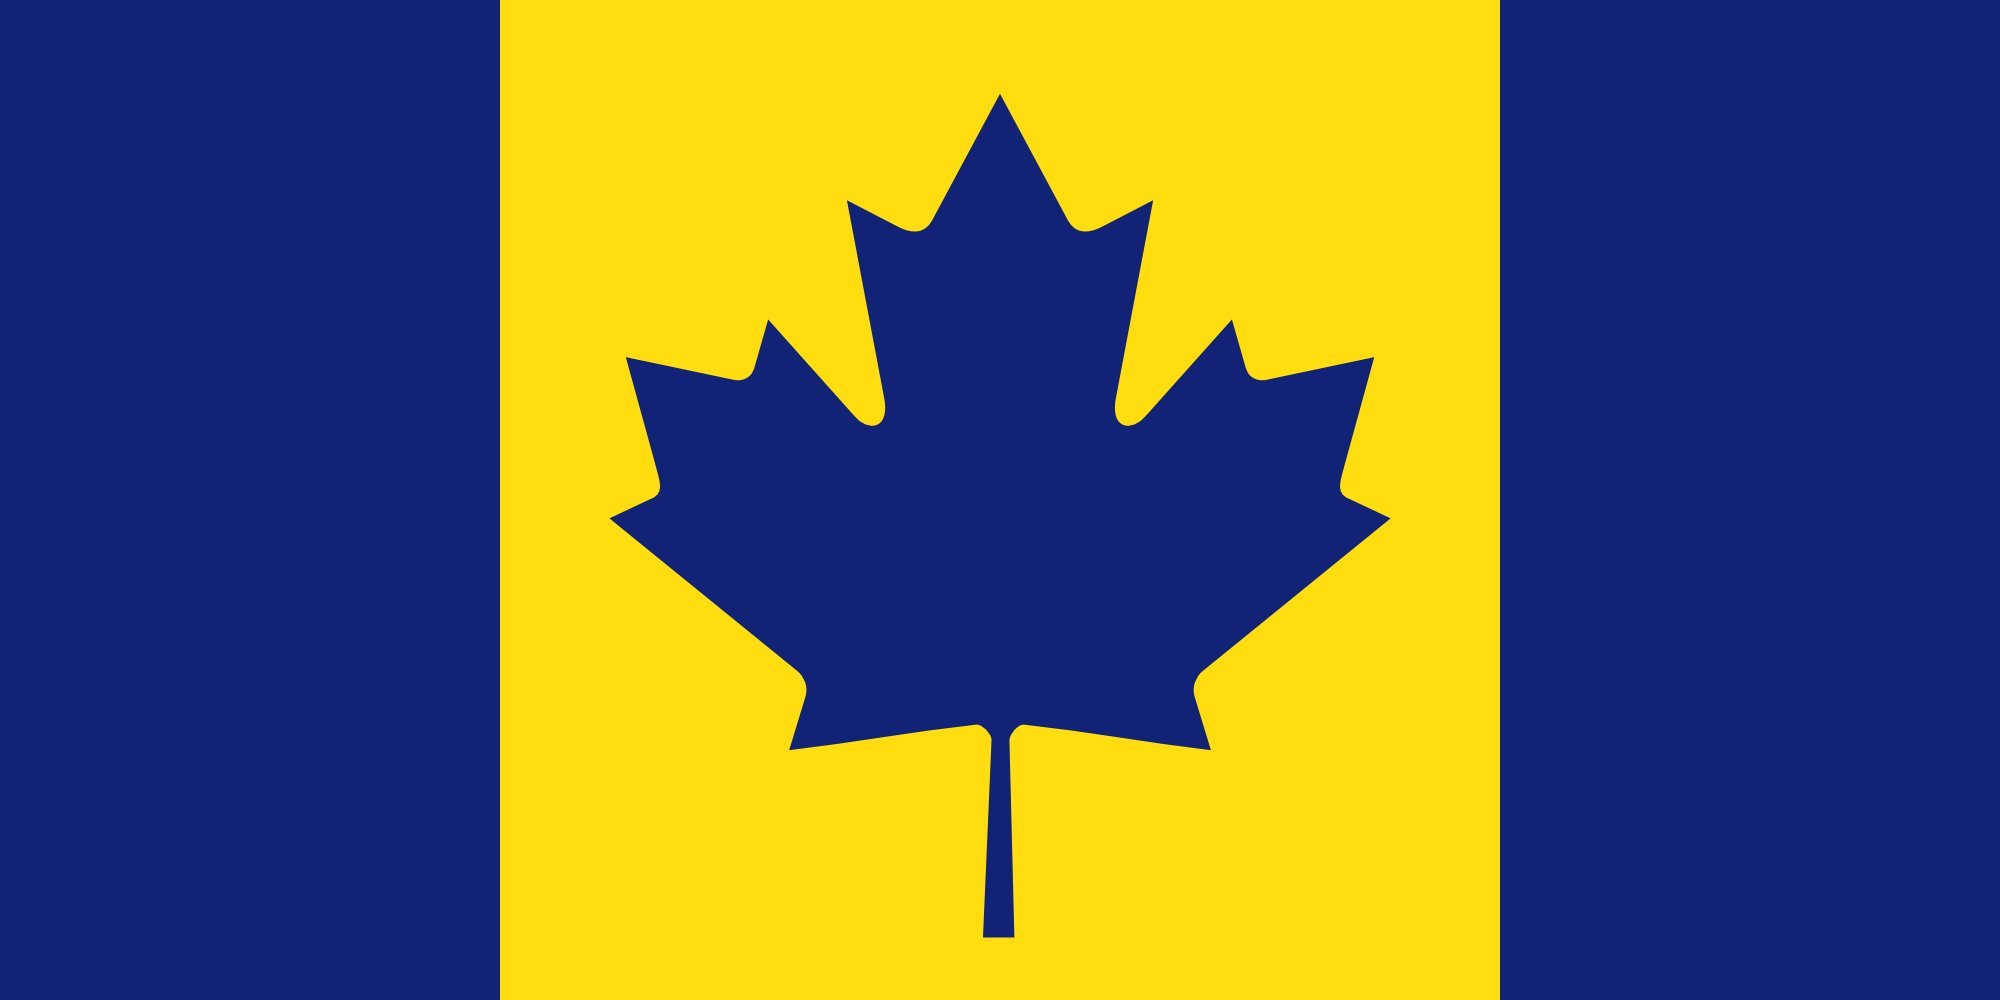 Table-Flag / Desk-Flag: Canada recolour | The maize and blue Michigan Wolverines colored Flag of Canada used to cheer on Stauskas 15x25cm